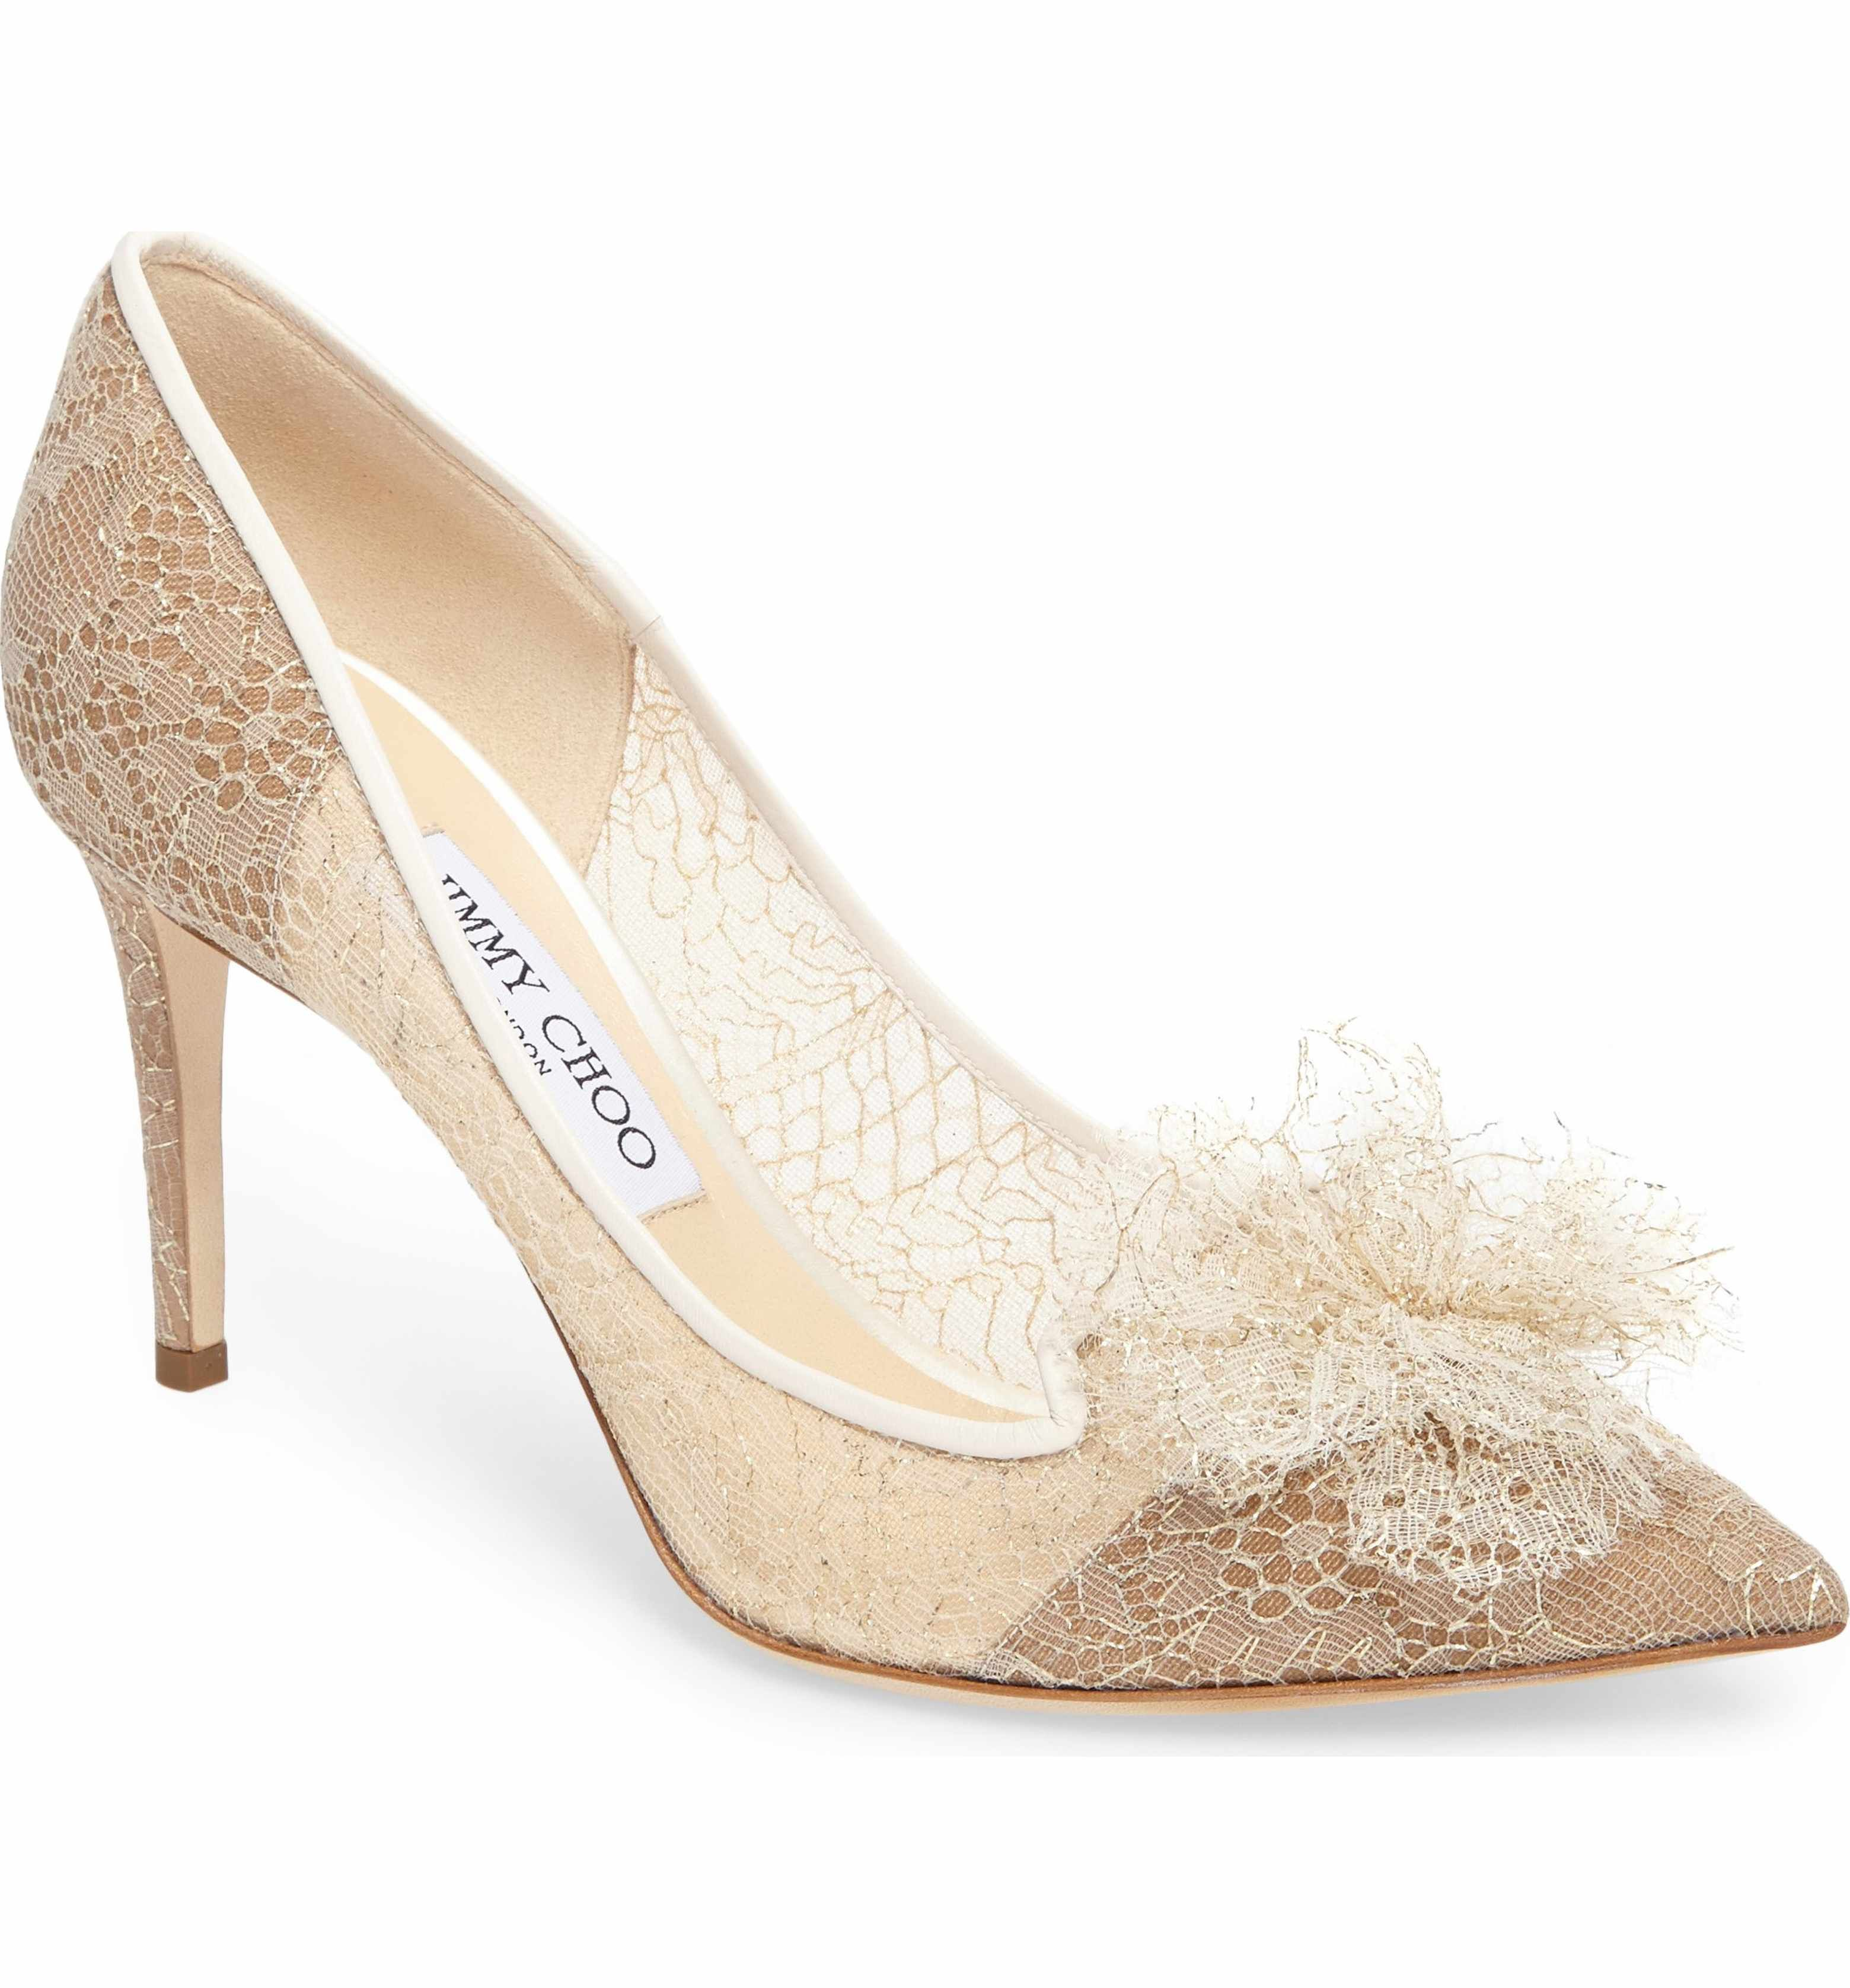 Main Image Jimmy Choo Estelle Chantilly Tulle Pump Women Women S Pumps Jimmy Choo Special Occasion Shoes